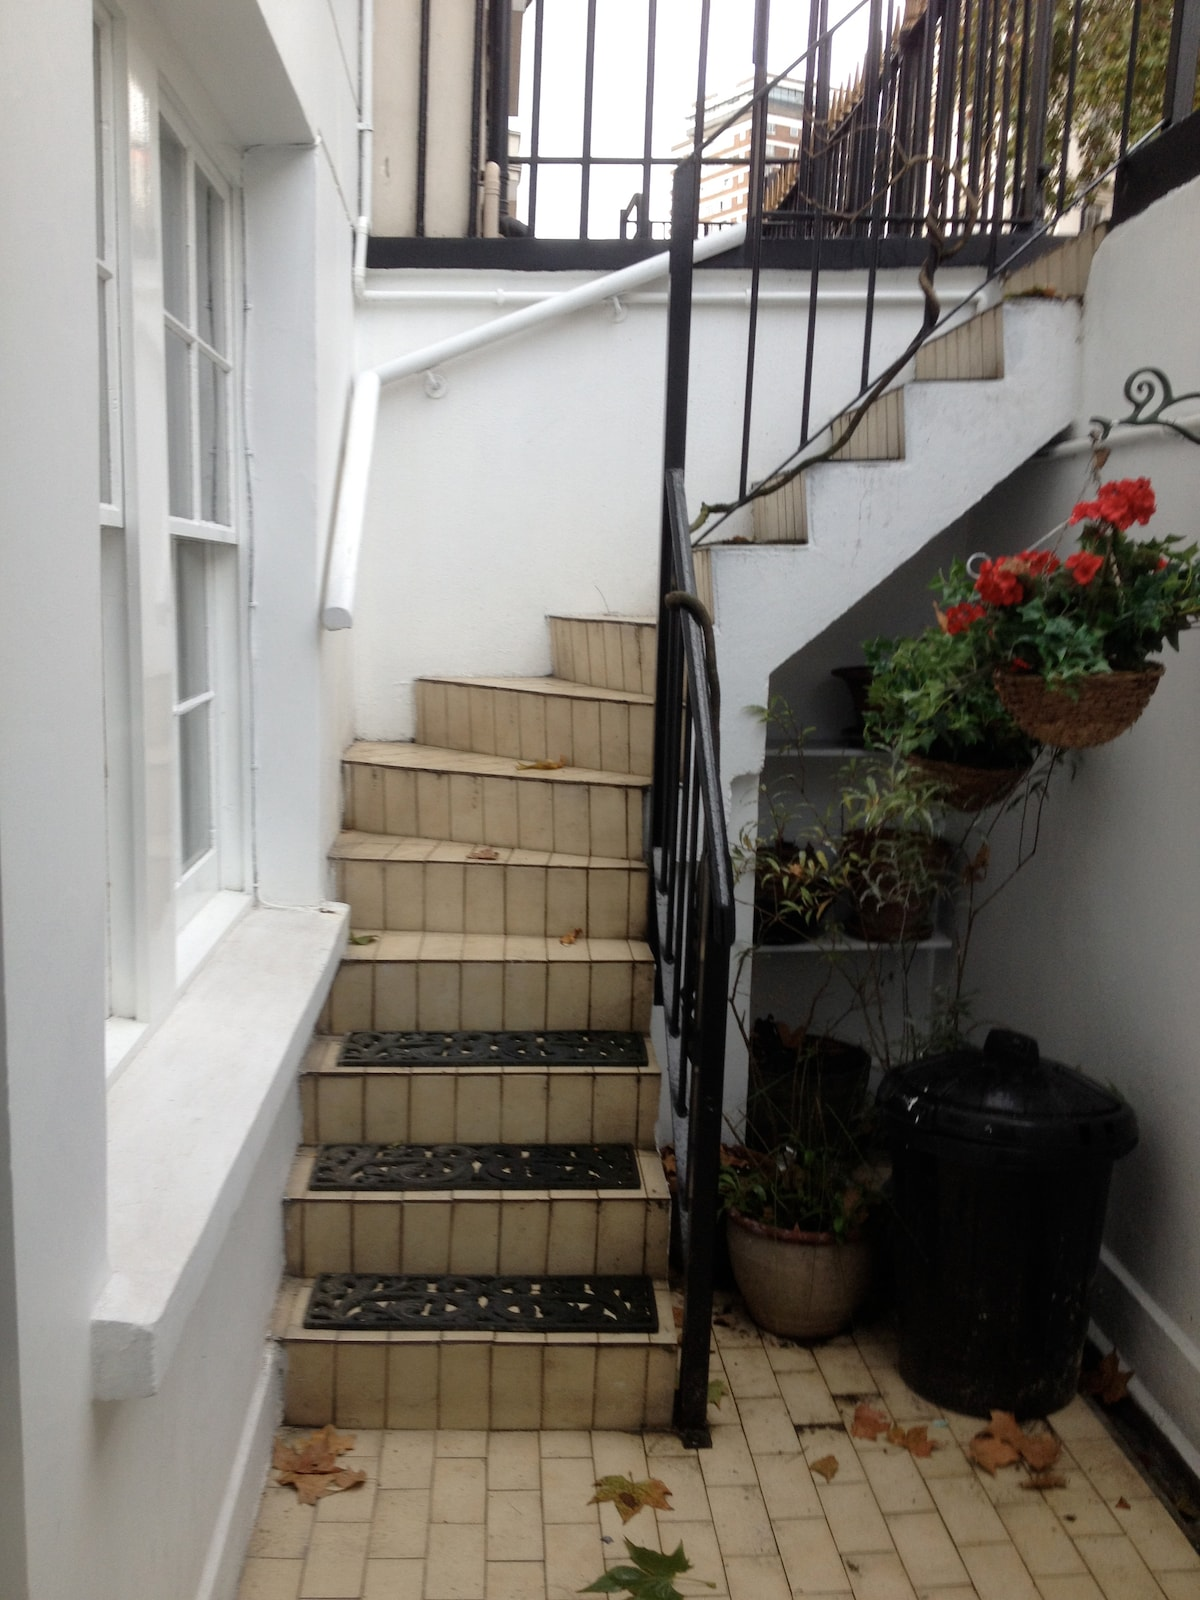 steps down to the flat.